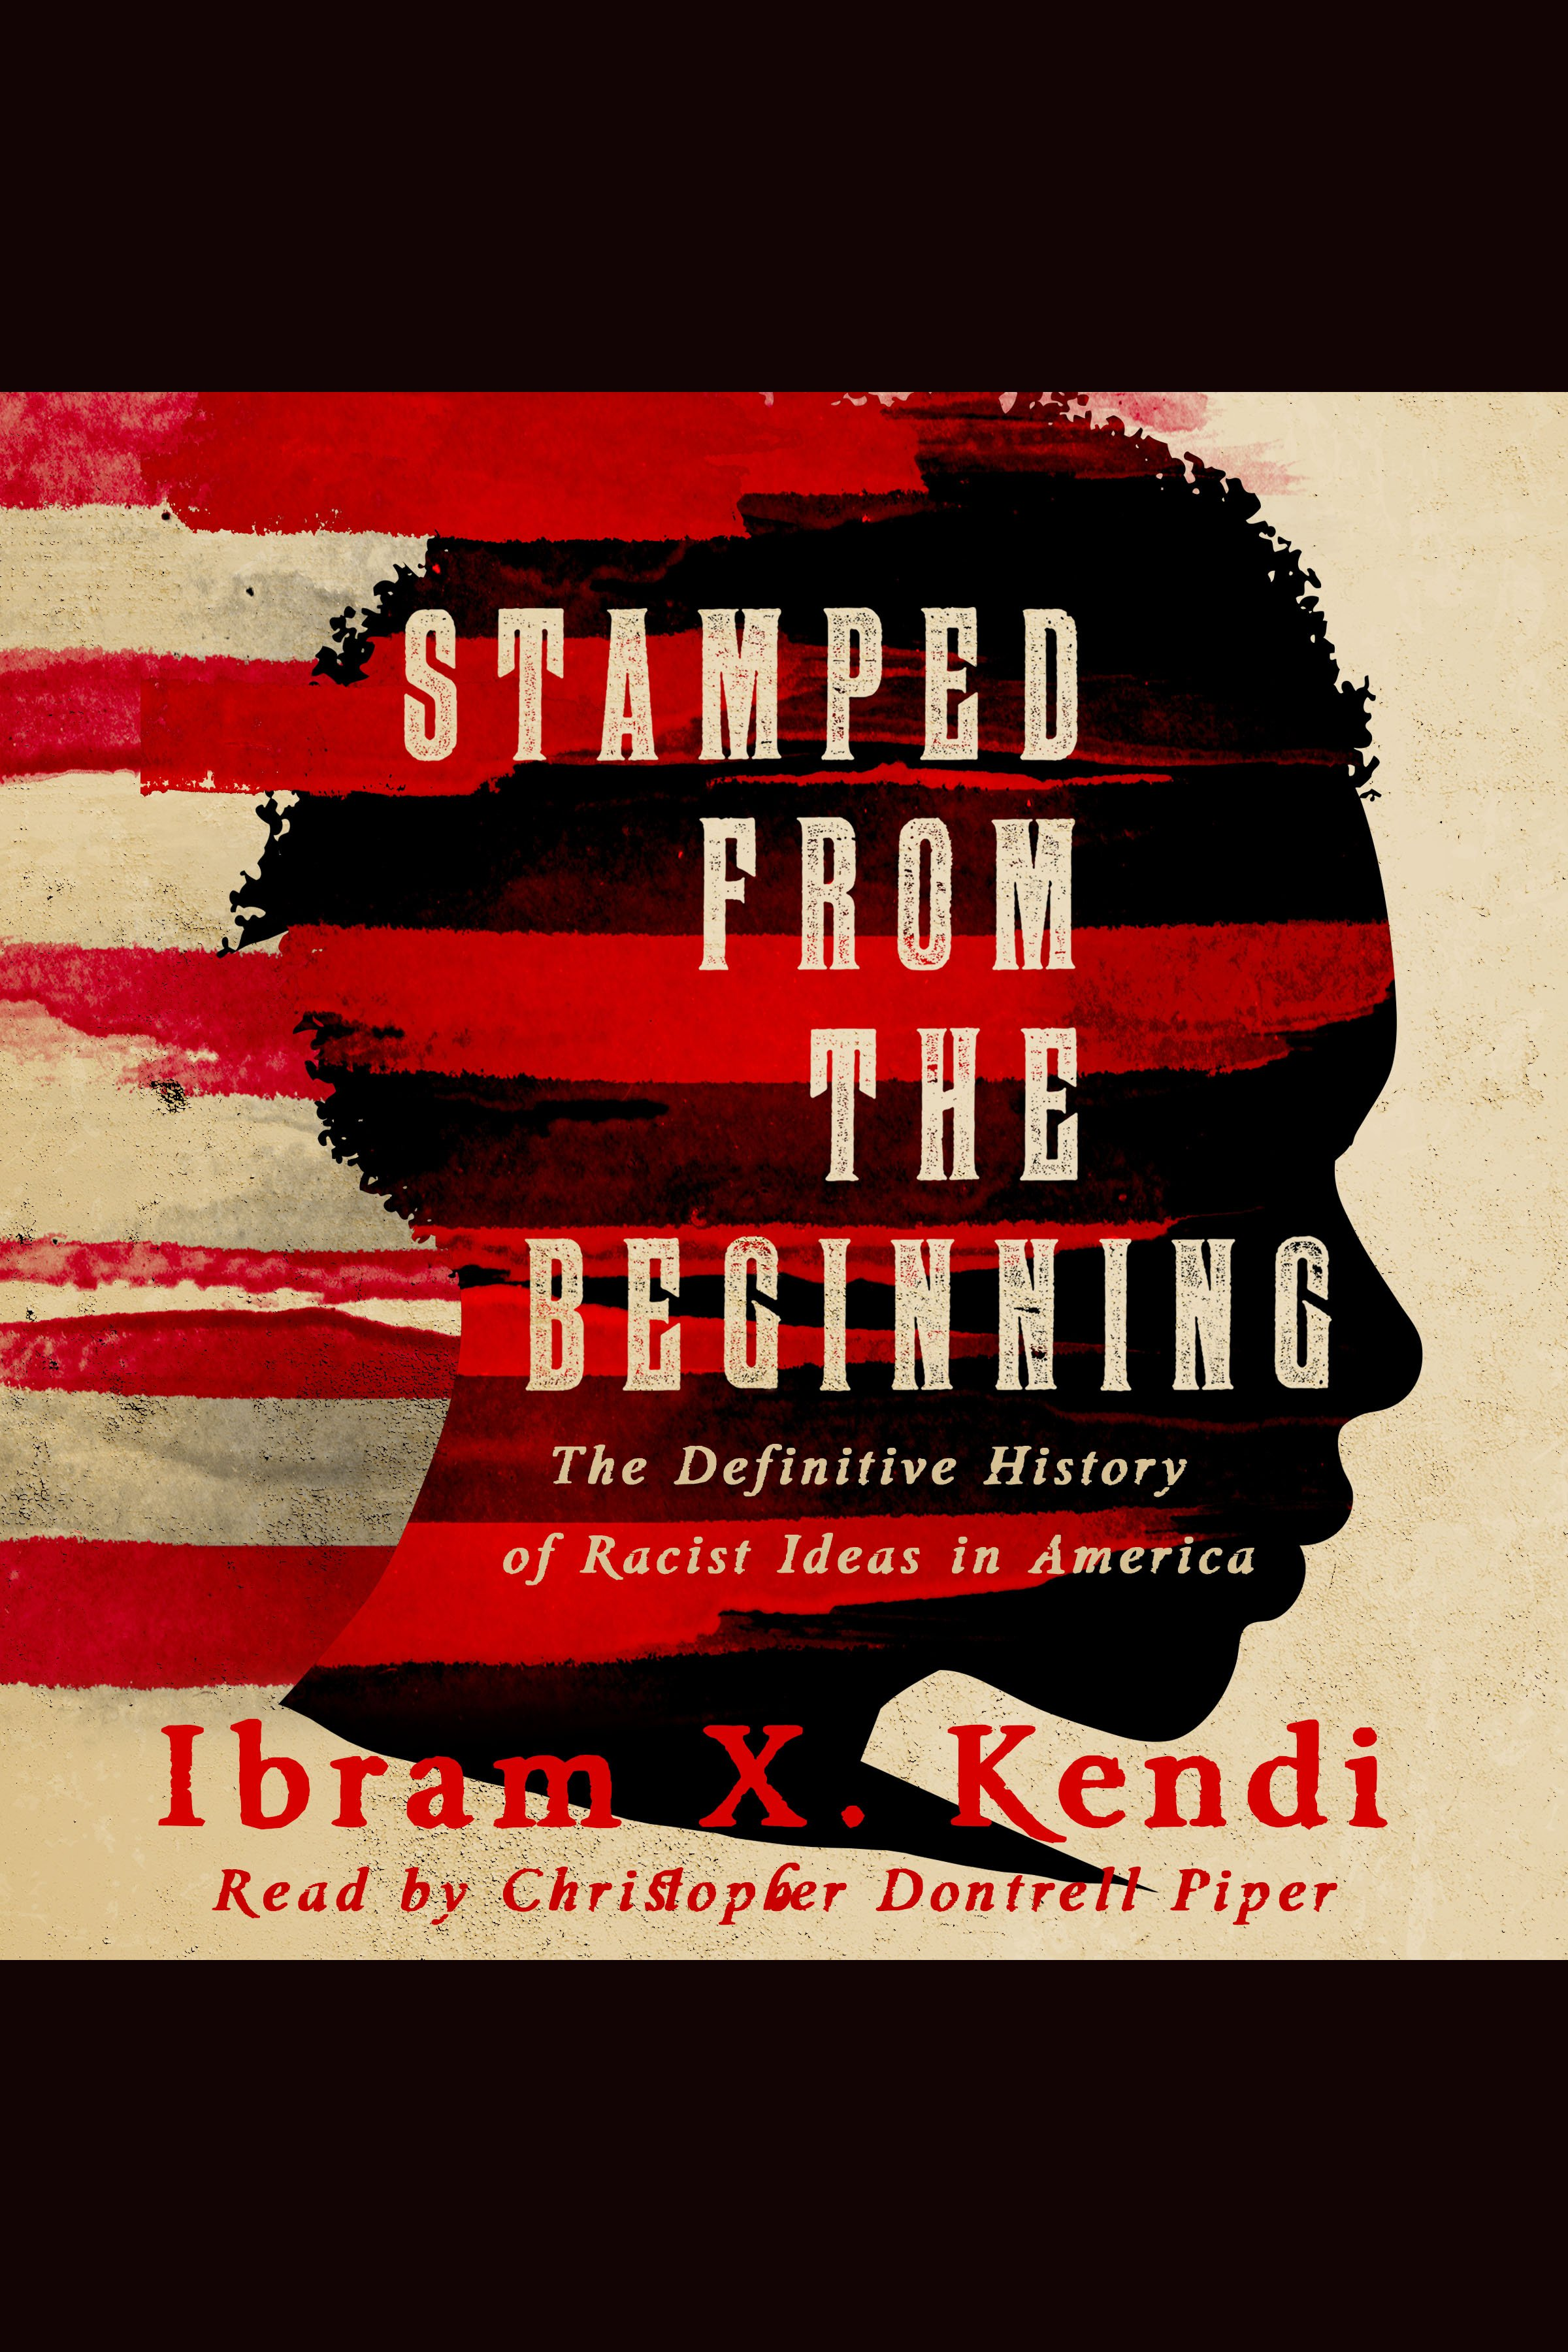 Stamped from the Beginning A Definitive History of Racist Ideas in America